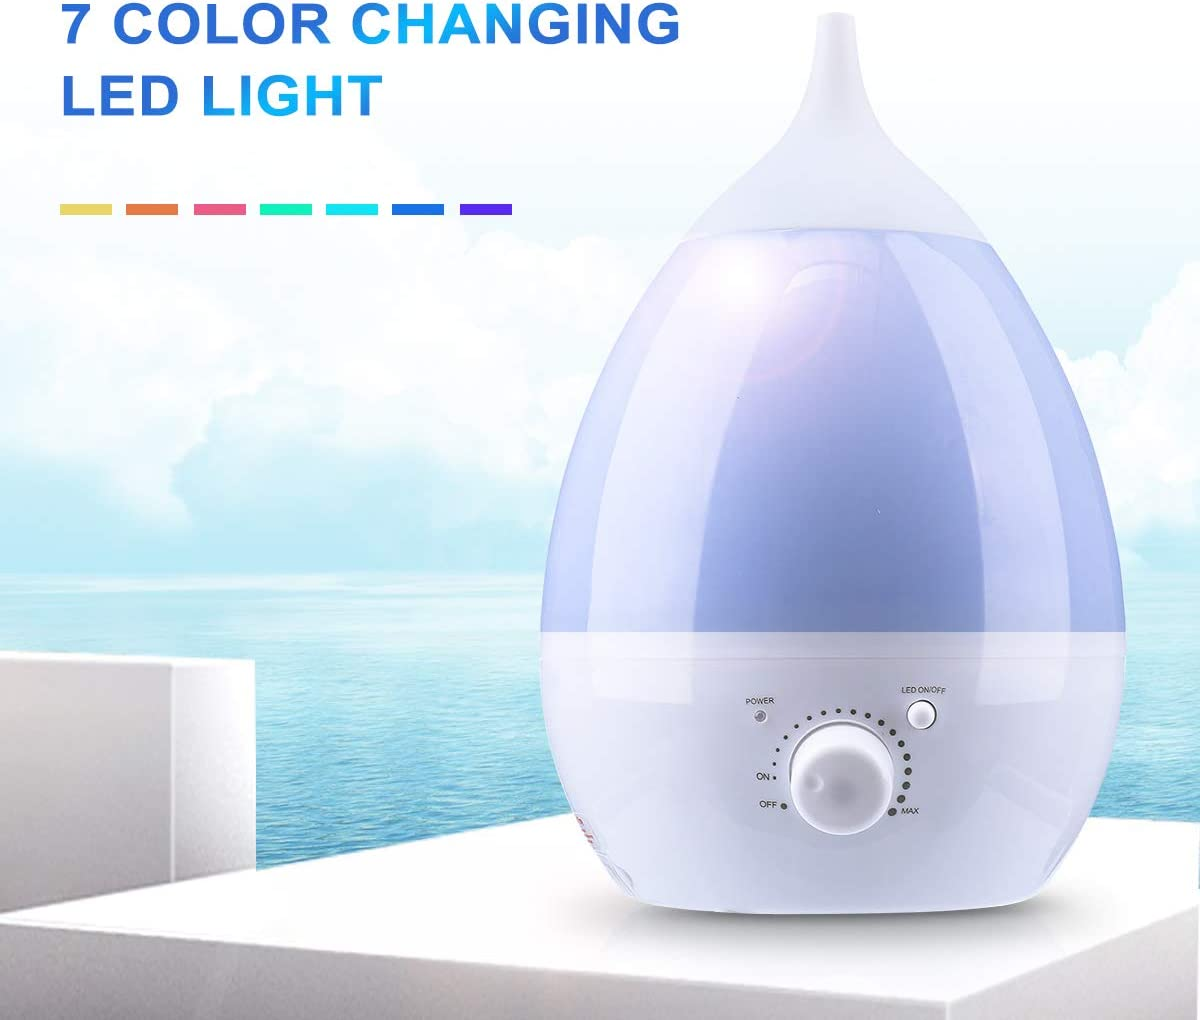 Janolia Cool Mist Humidifier, 1.3L Ultrasonic Air Humidifier, with Essential Oil Tray, 7 Colors LED Night Light, for Home, Office, Yoga, Reading Blue